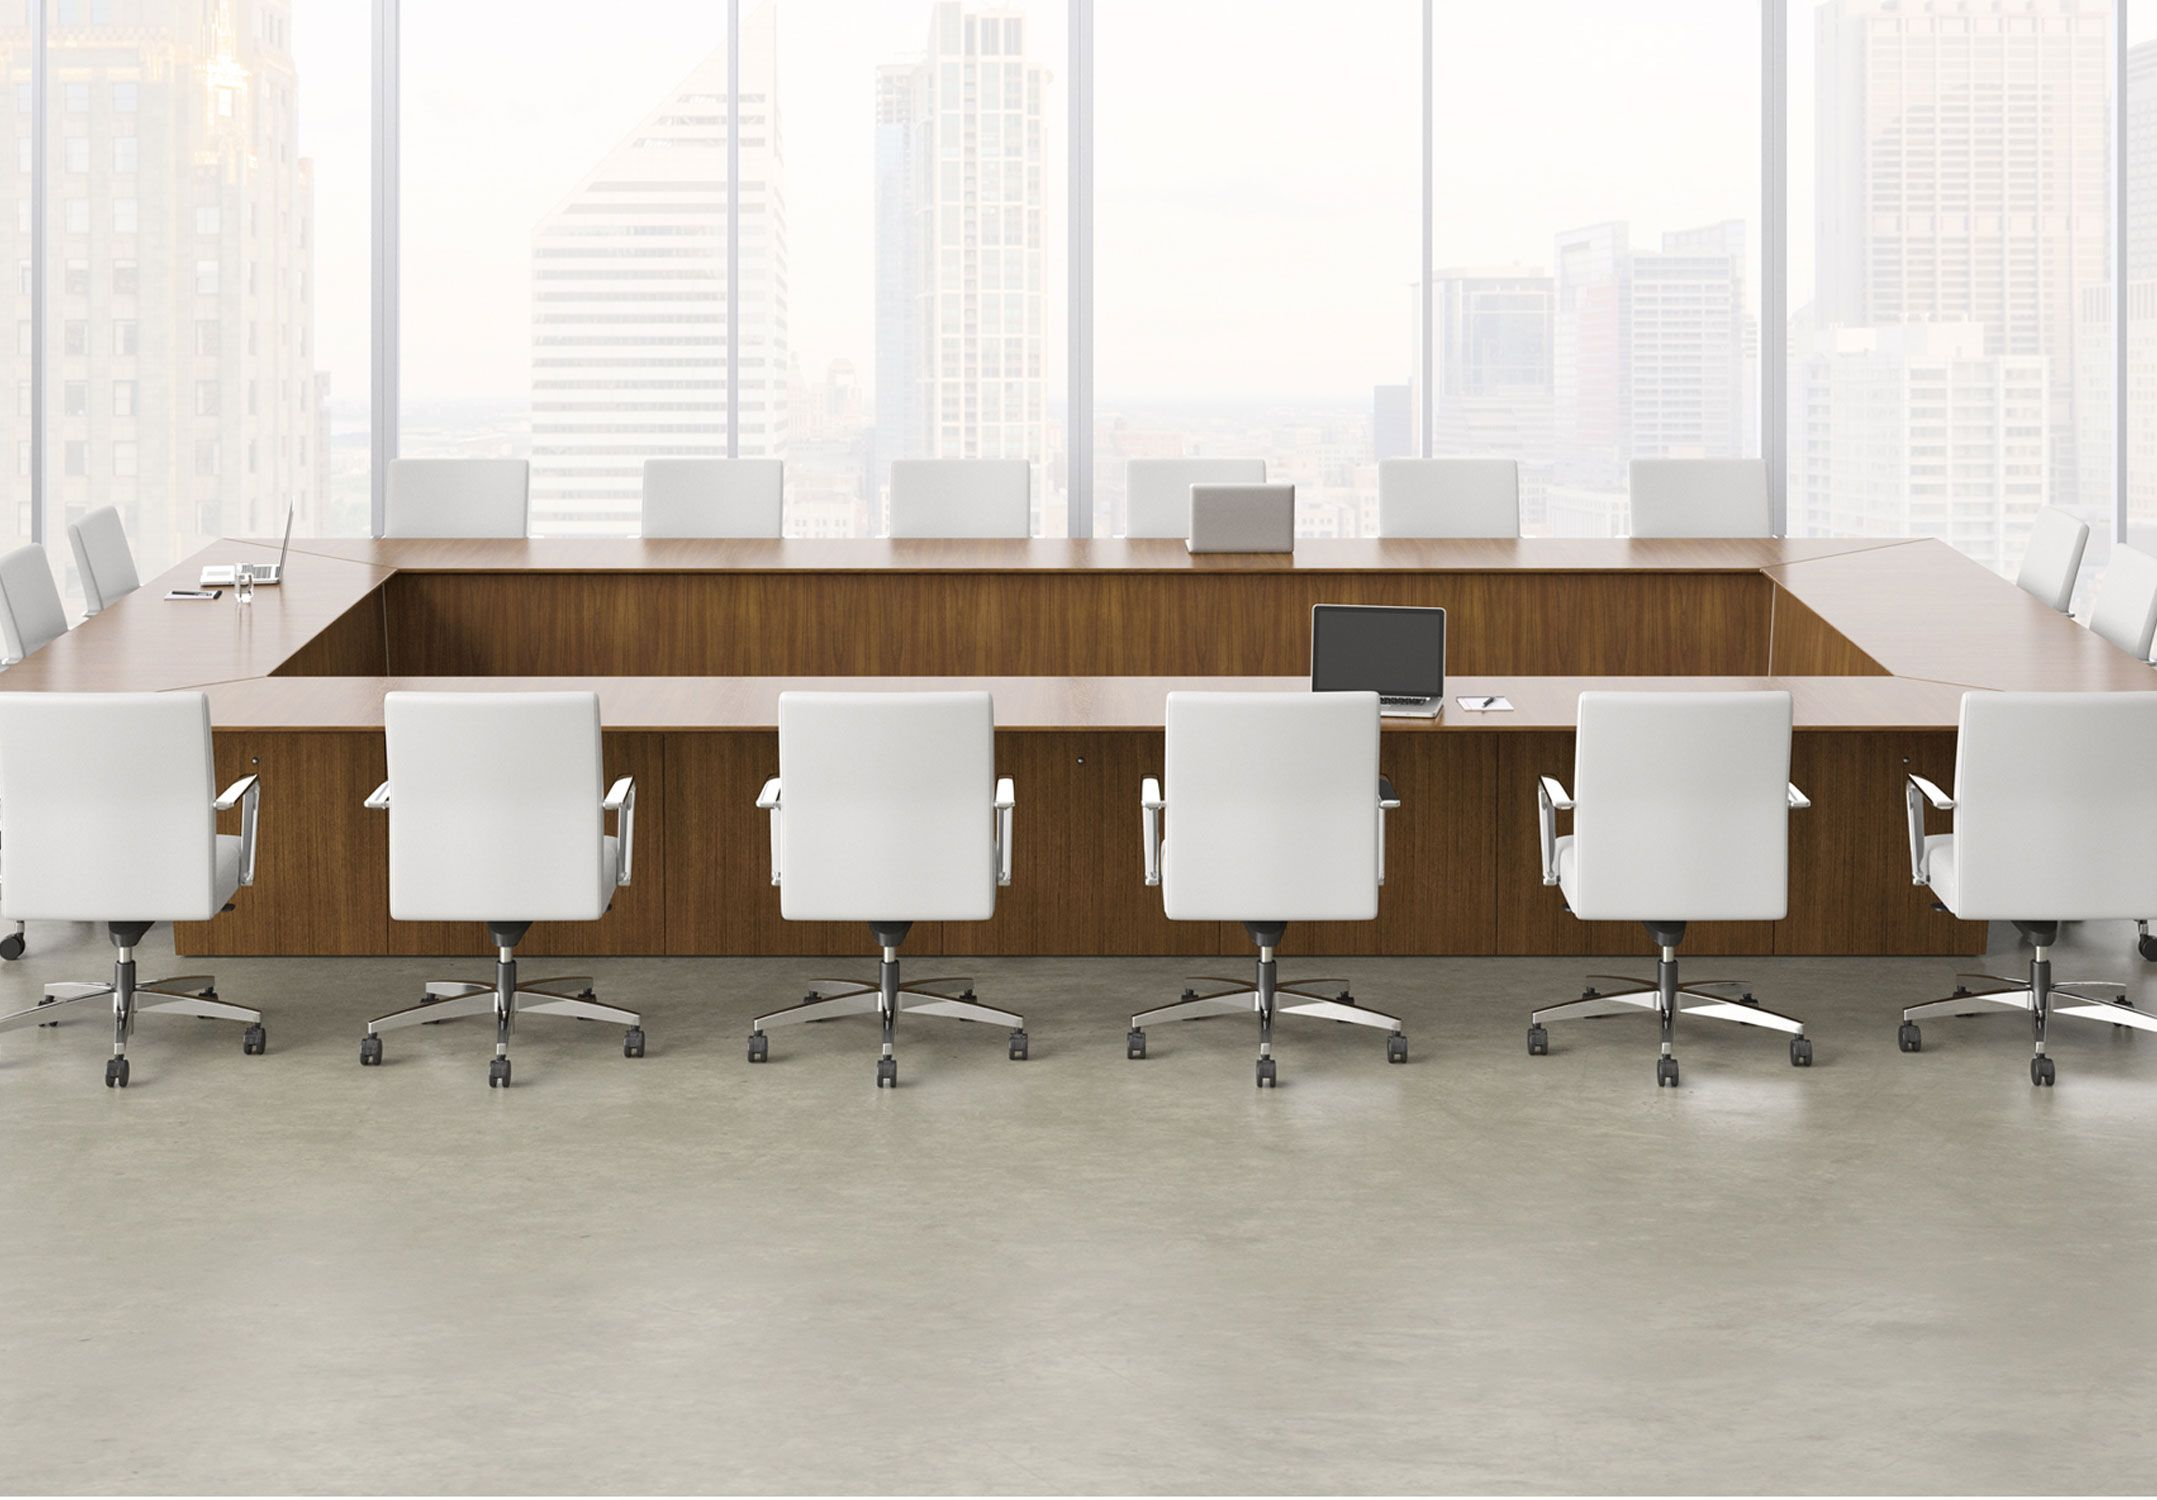 ativaweb rev jpg 2157 1500 des 240 conference room pinterest